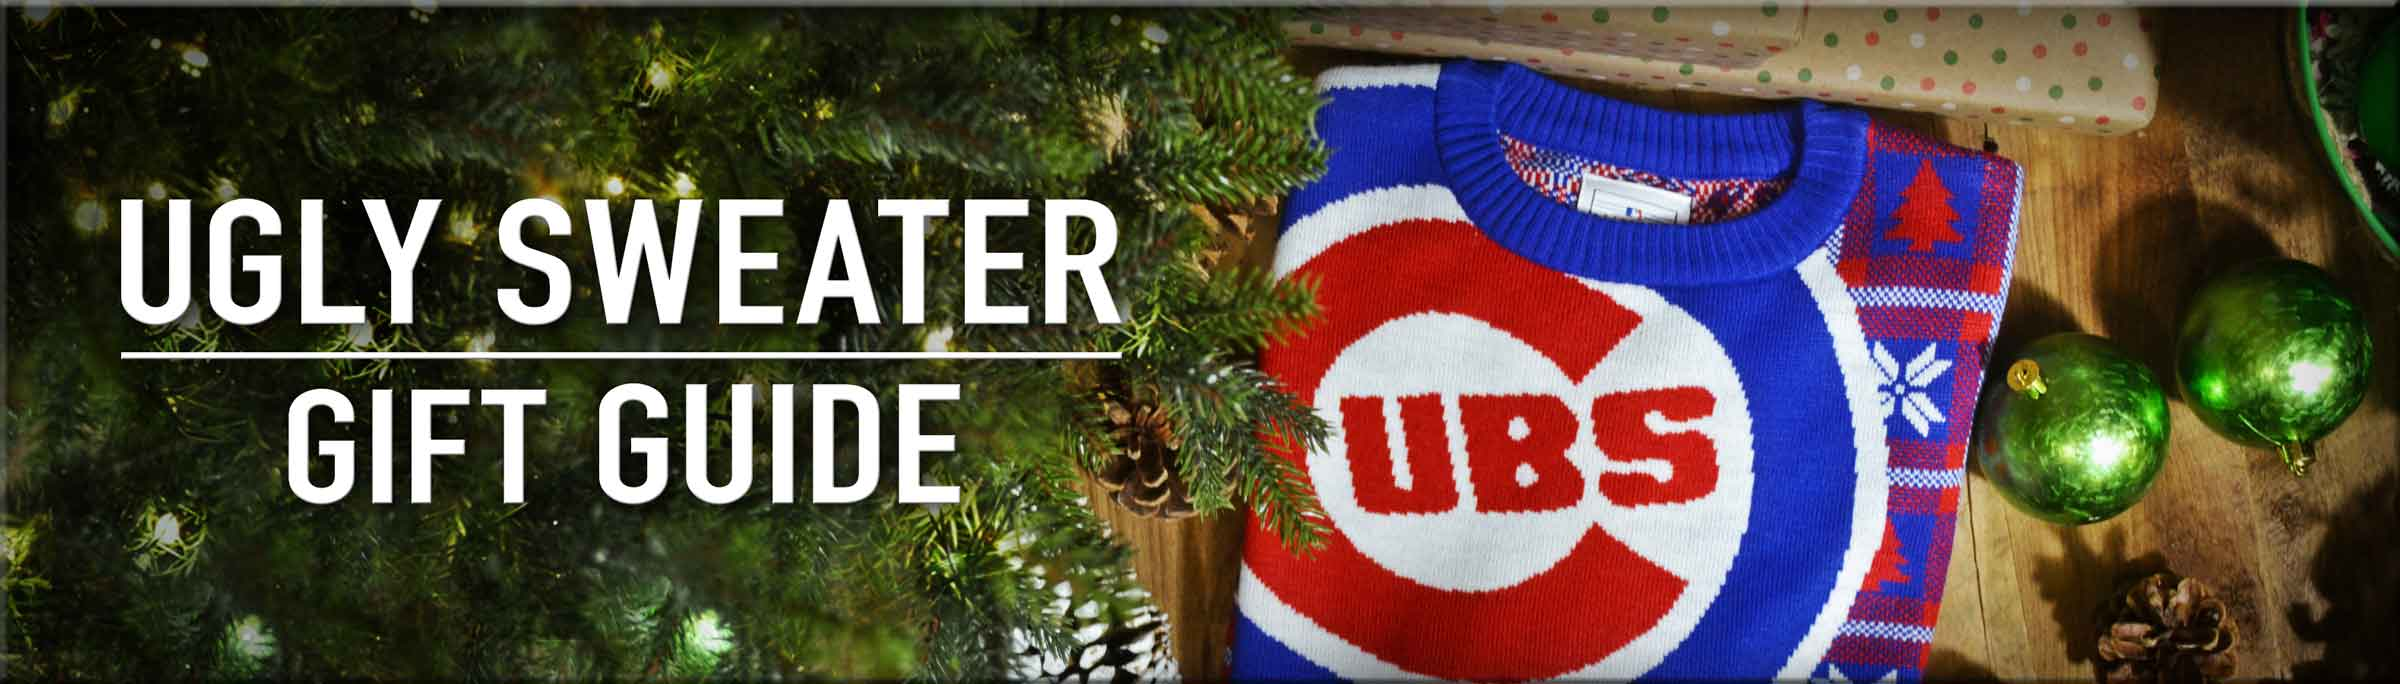 Ugly Sweaters Christmas Gift Guide - Ugly Sweaters from the Chicago Cubs, Blackhawks, Bulls, and Bears.